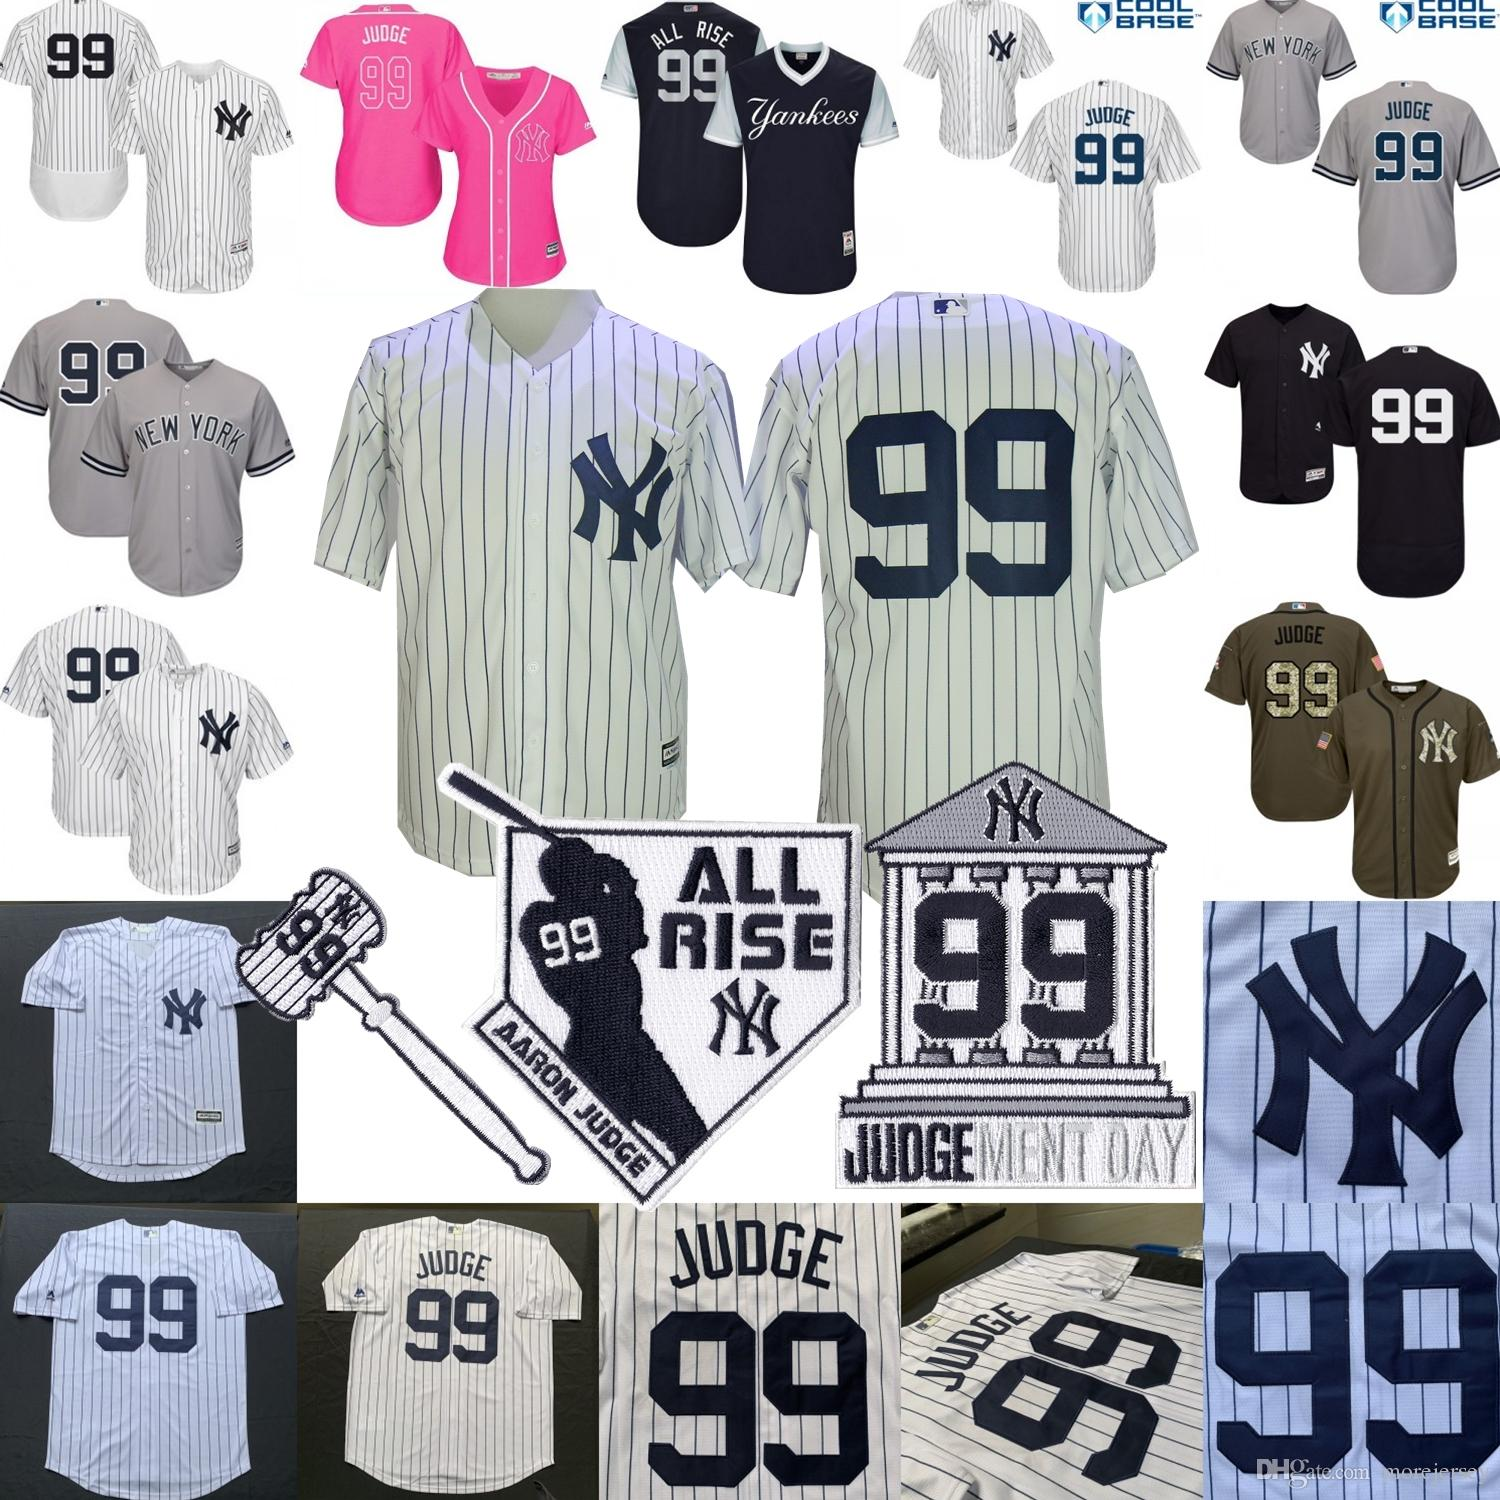 on sale fdb87 d418c Aaron Judge Jersey New York Baseball Yankees Jersey Men Women Youth Kid All  Rise Hammer Ment Day Patch All Stitched